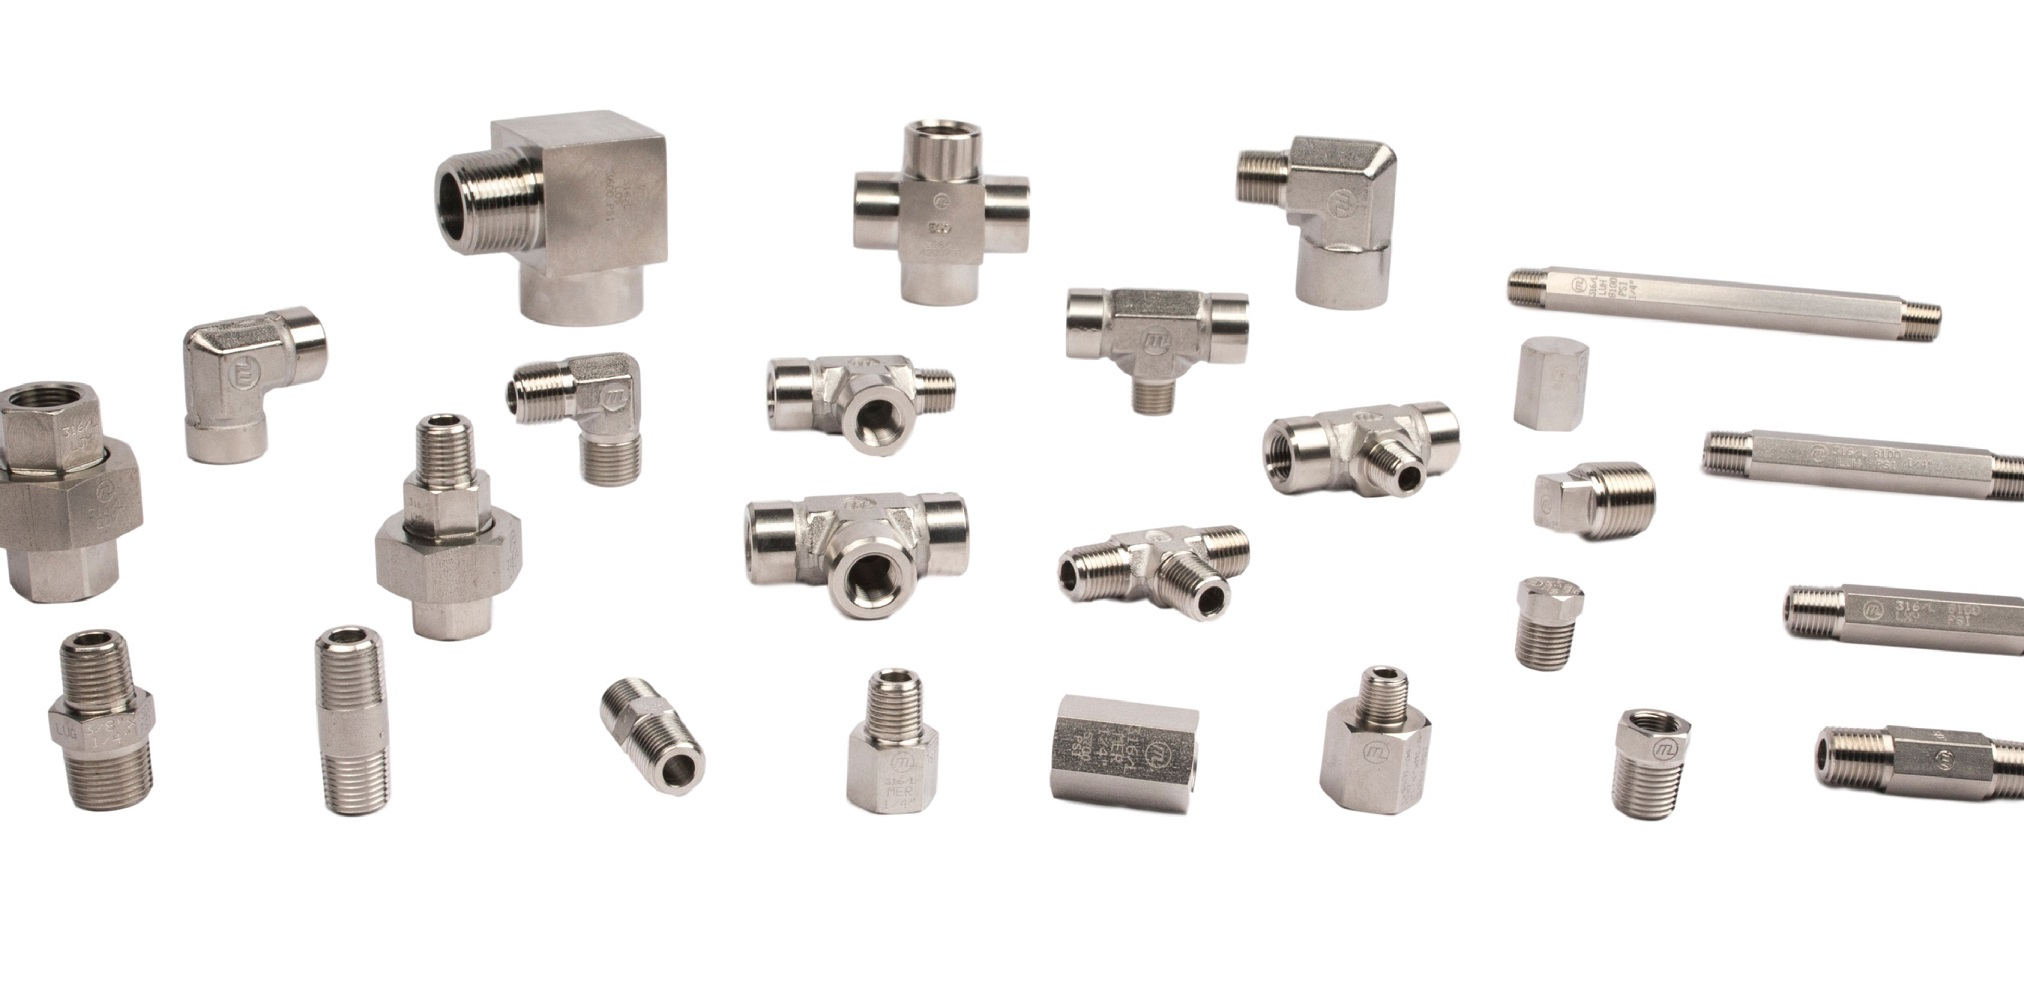 WIDE RANGE OF PRODUCTS AND STOCK